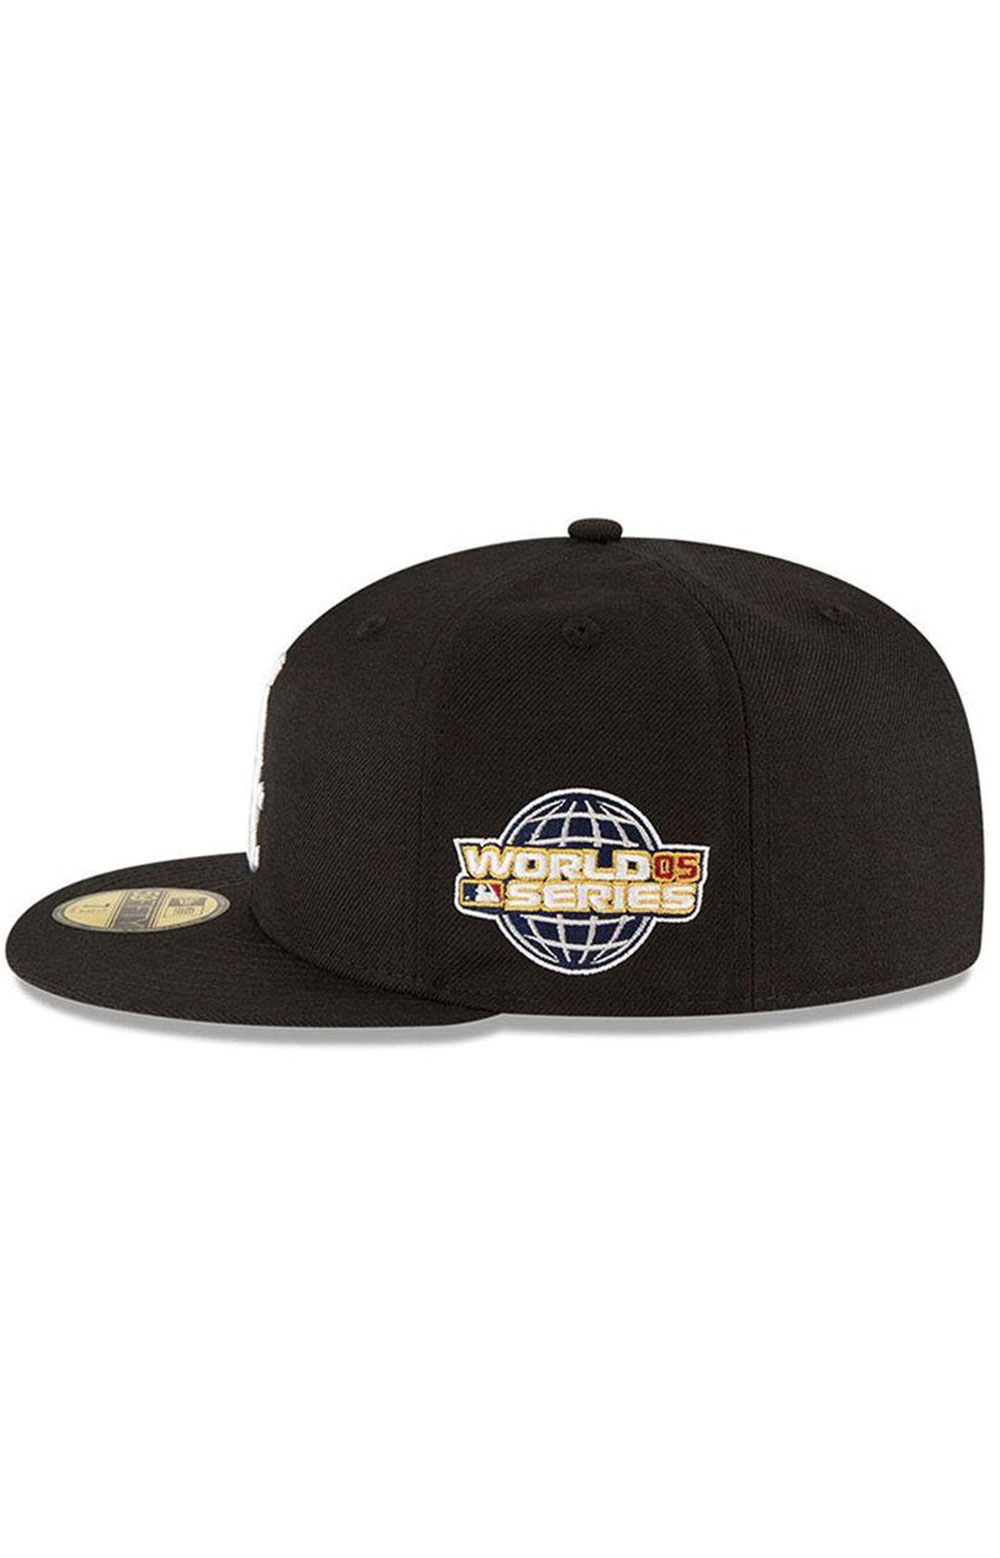 Chicago White Sox 2005 World Series Wool 59Fifty Fitted Hat  2